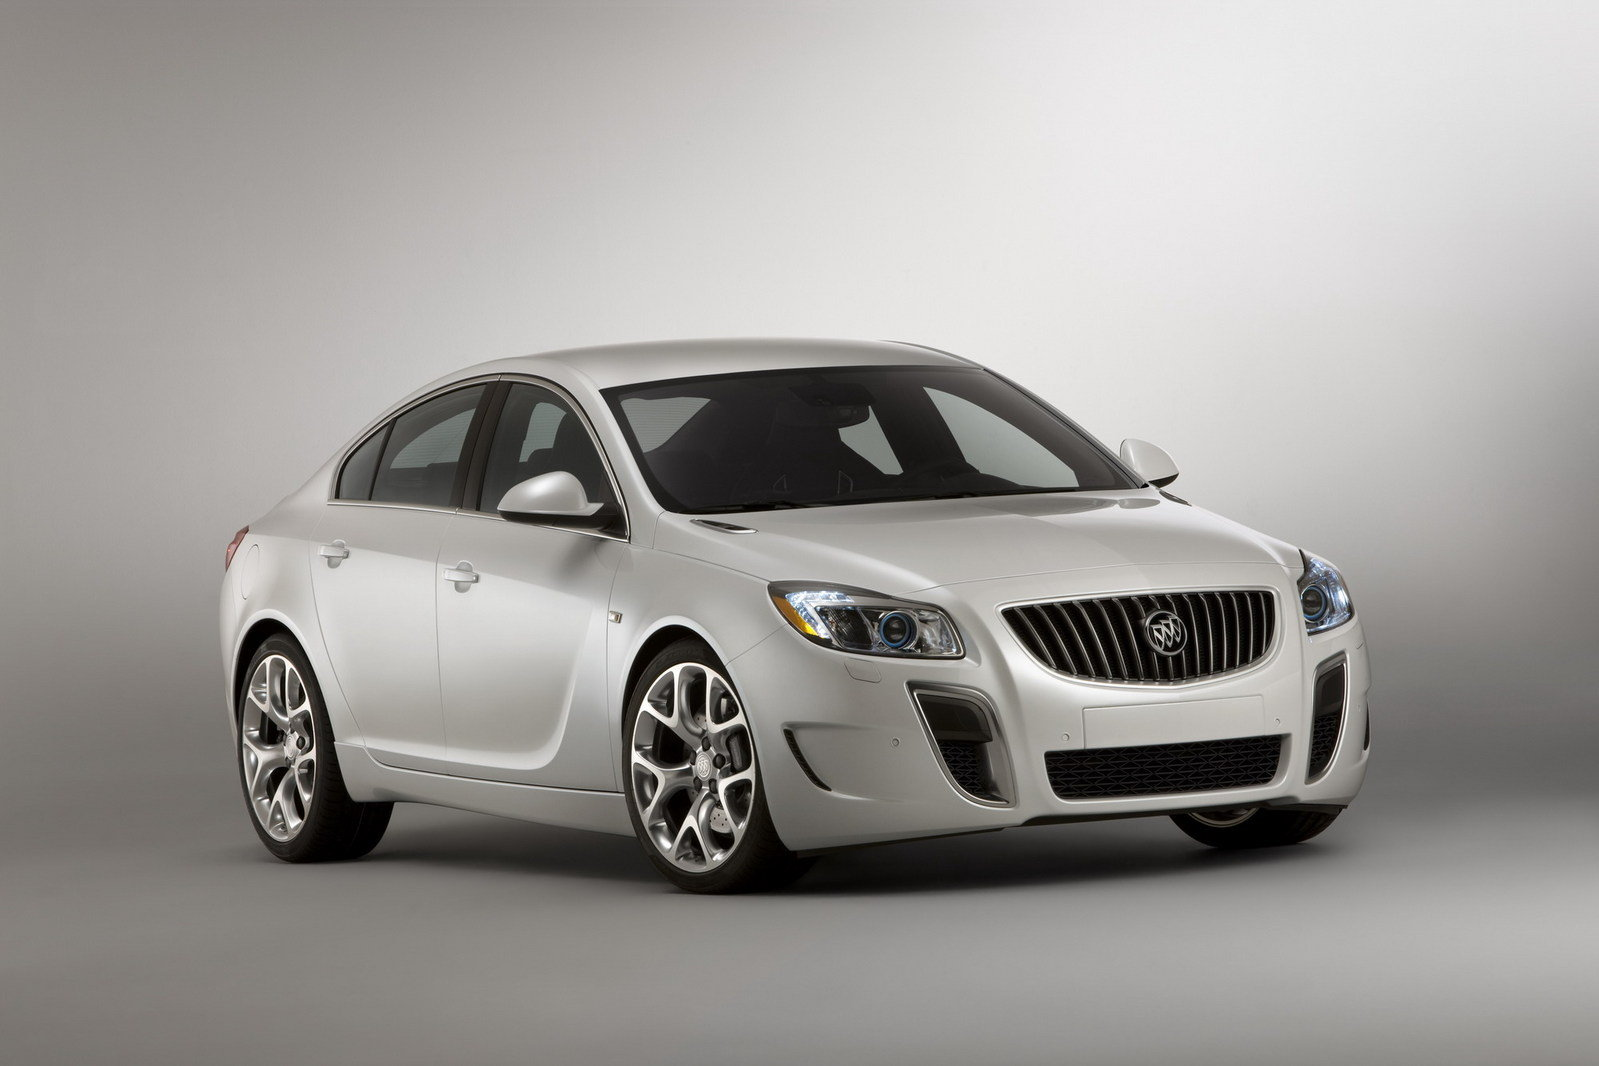 2010 buick regal gs concept review top speed. Black Bedroom Furniture Sets. Home Design Ideas